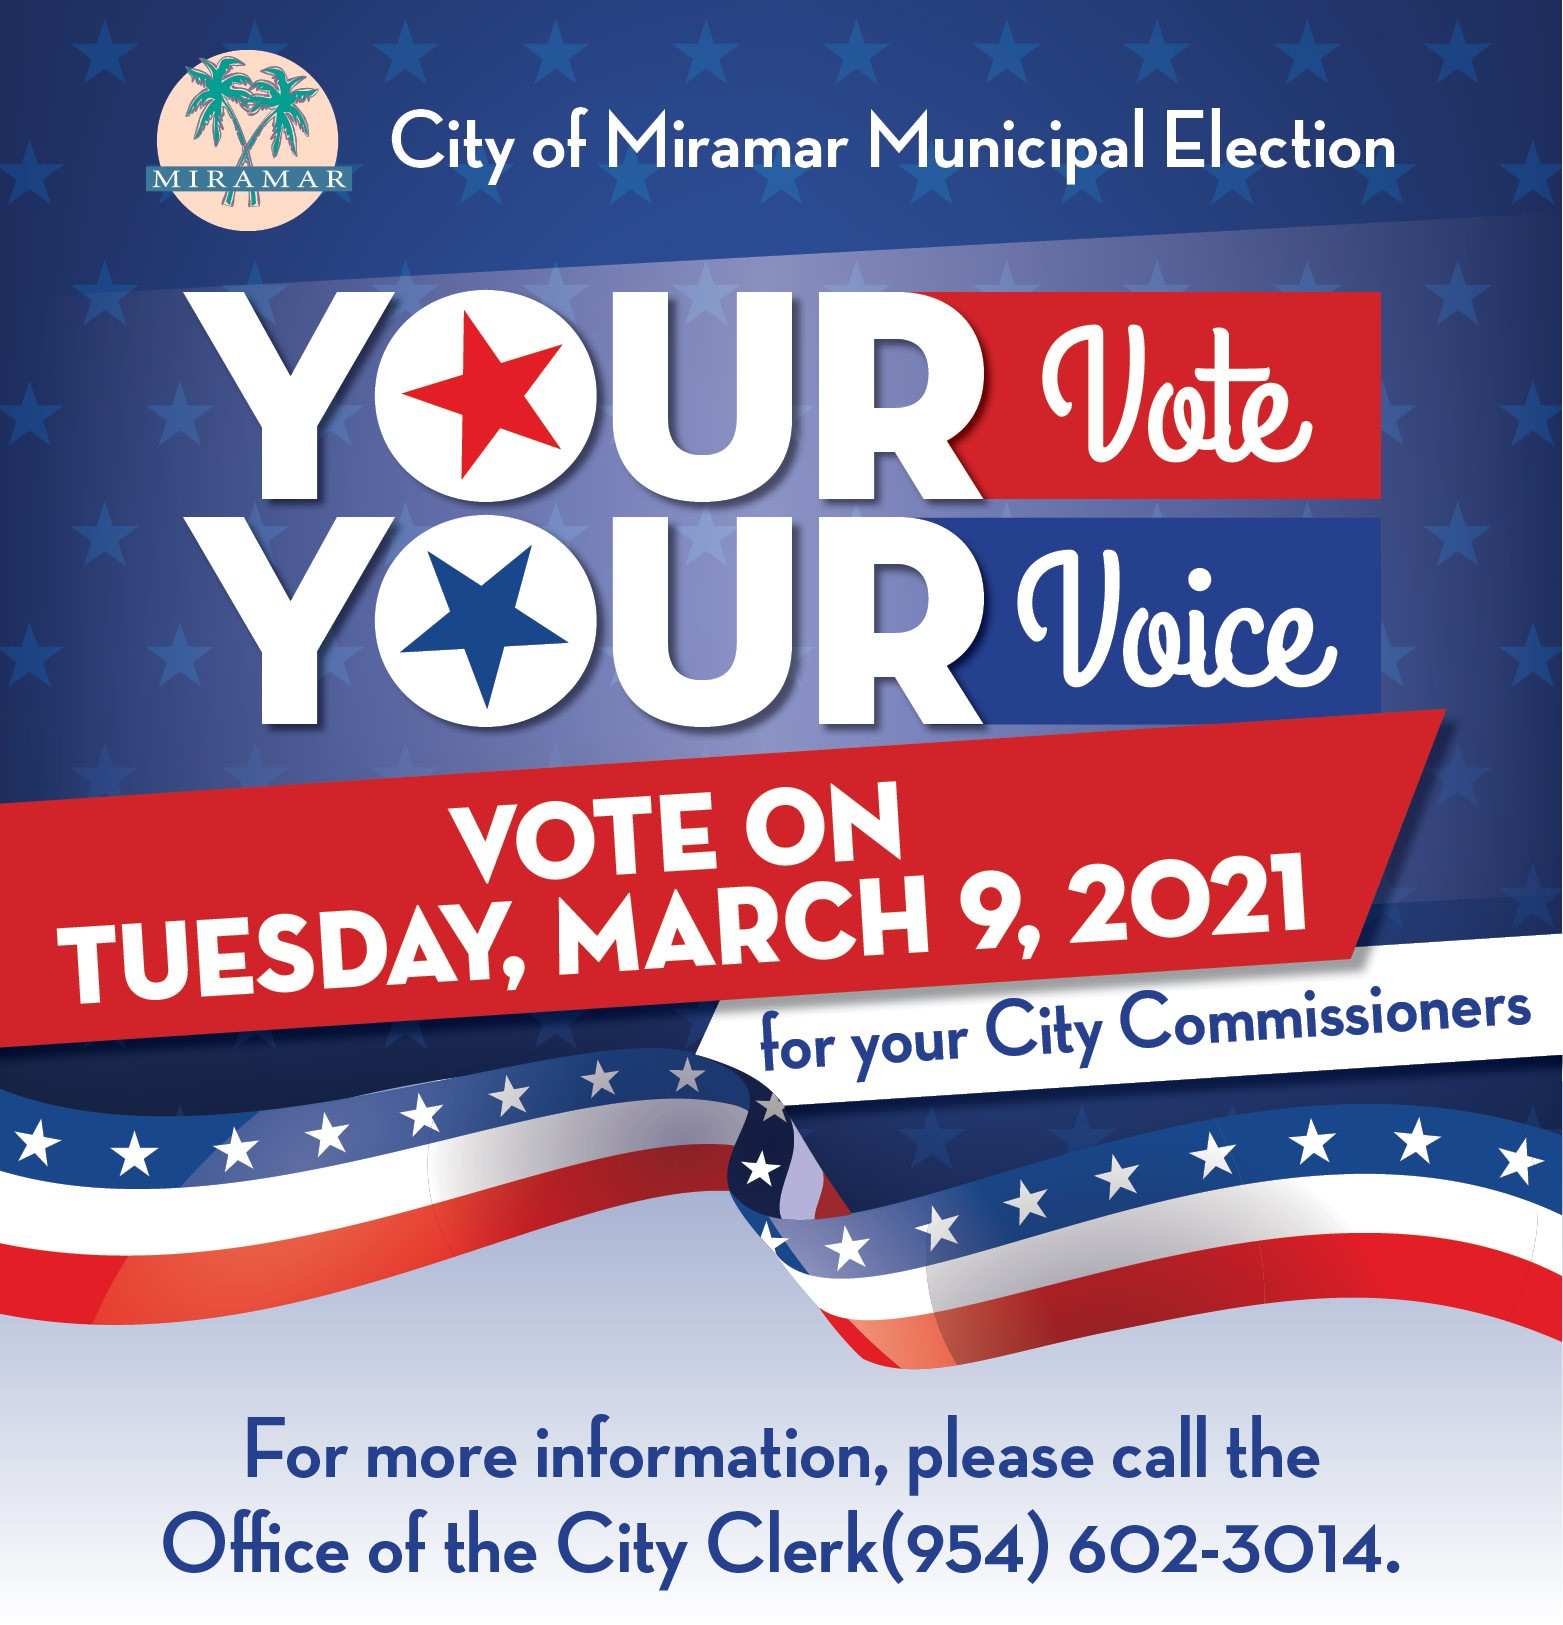 City of Miramar Municipal Election March 9 - Home Page Banner